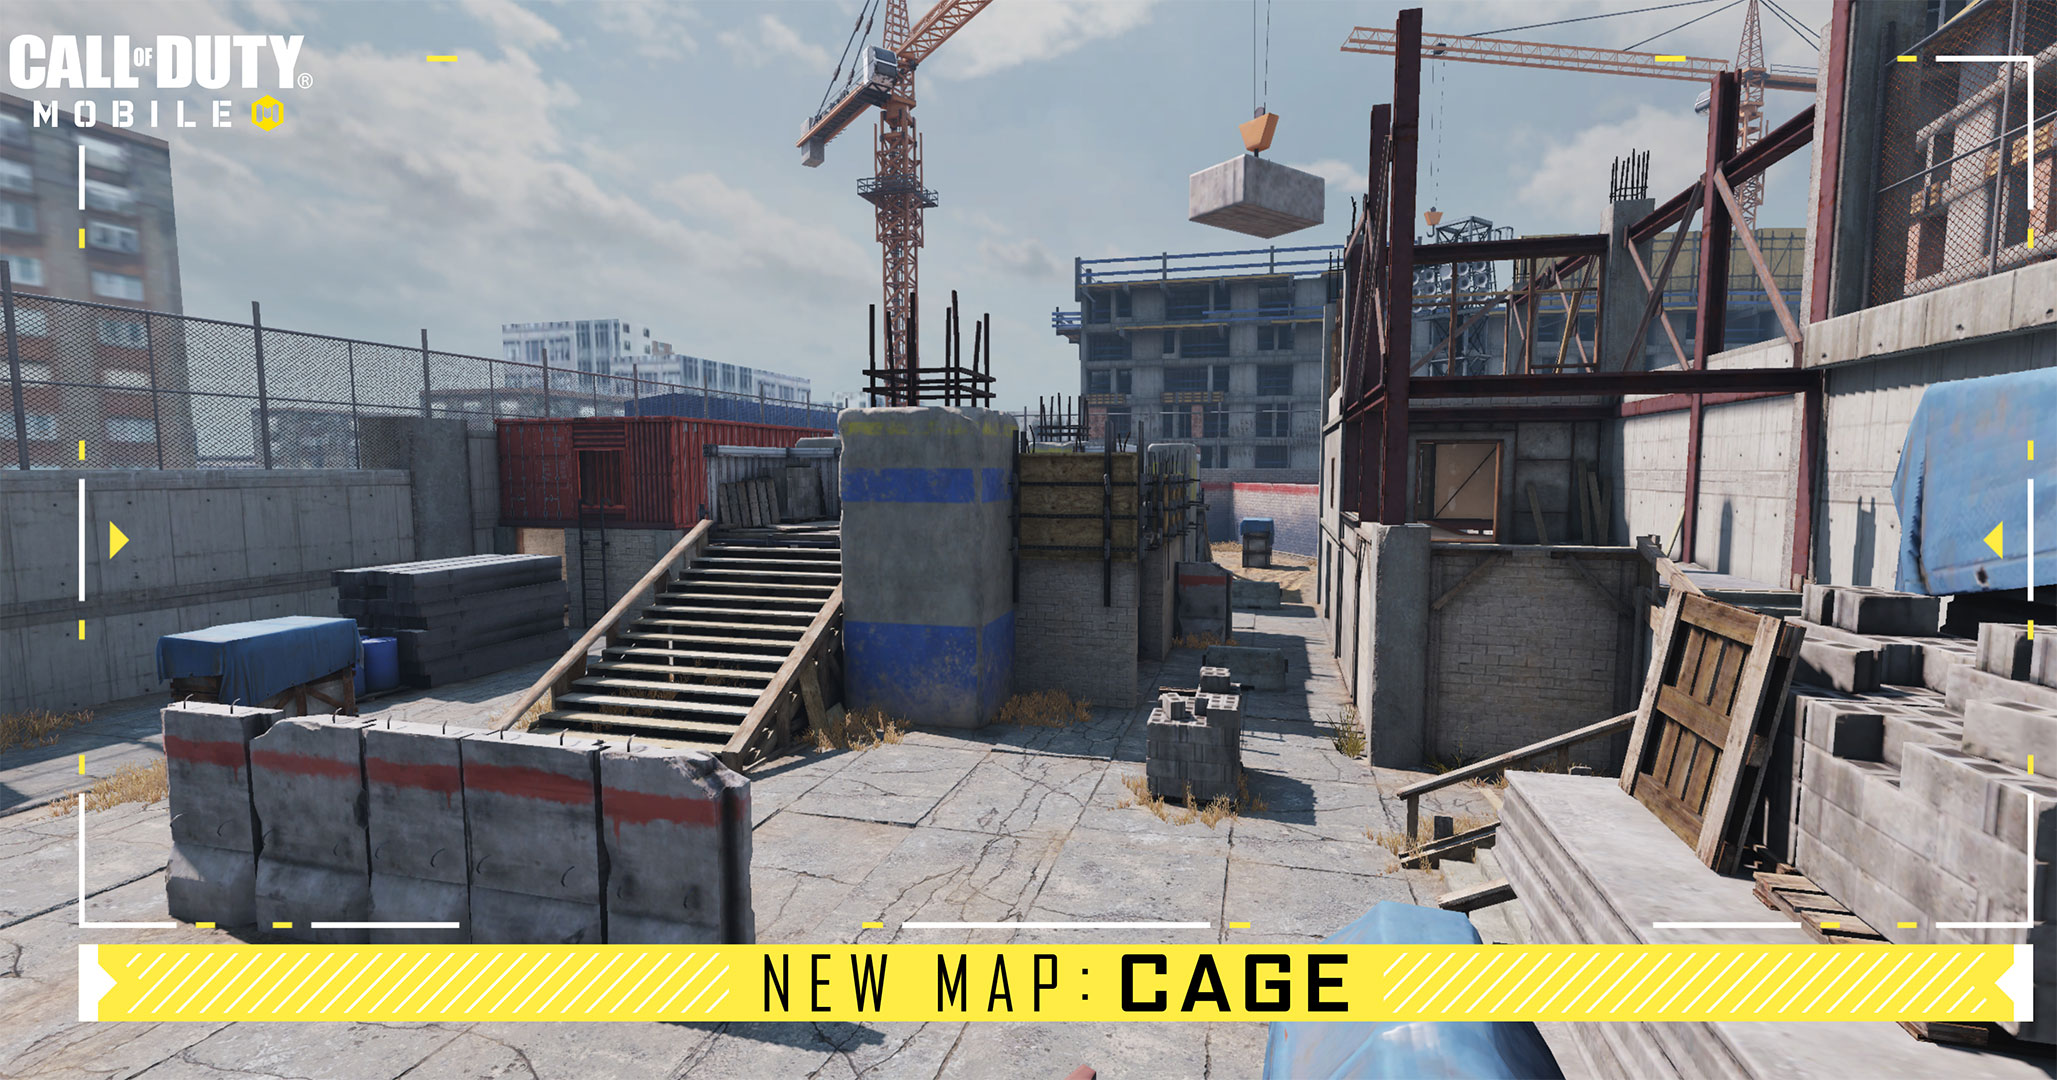 Call of Duty®: Mobile Map Snapshot: Cage - Image 1